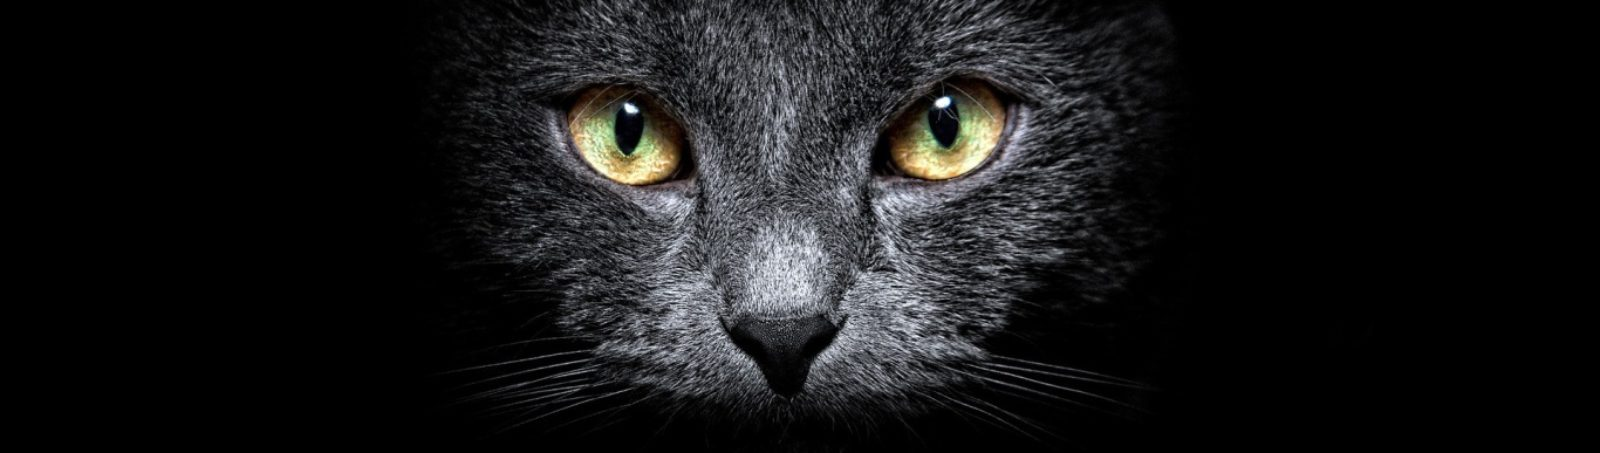 cropped-ws_Black_Cat_in_the_Dark_1366x768.jpg